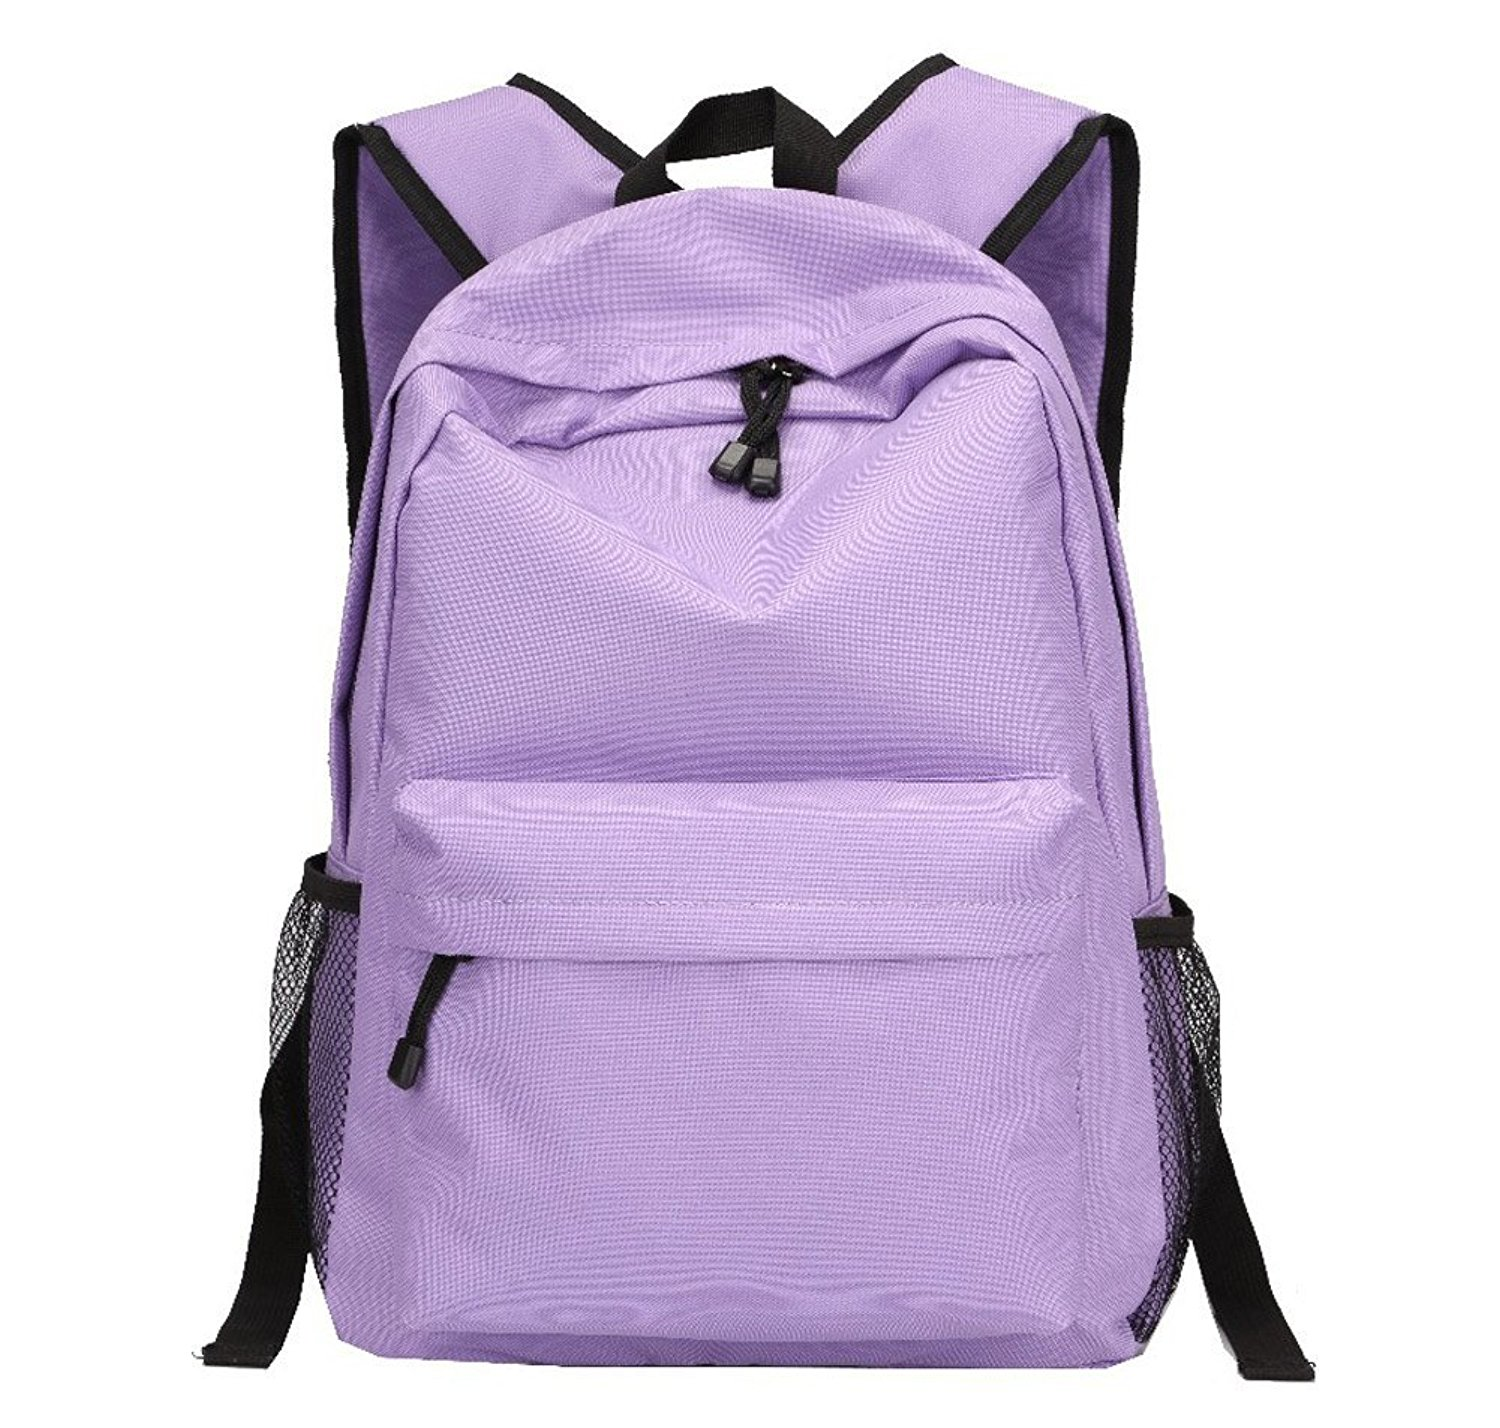 6f6cfcef3adb Get Quotations · Deolv Cool College School Backpacks for Girls Book Bags  for Teens